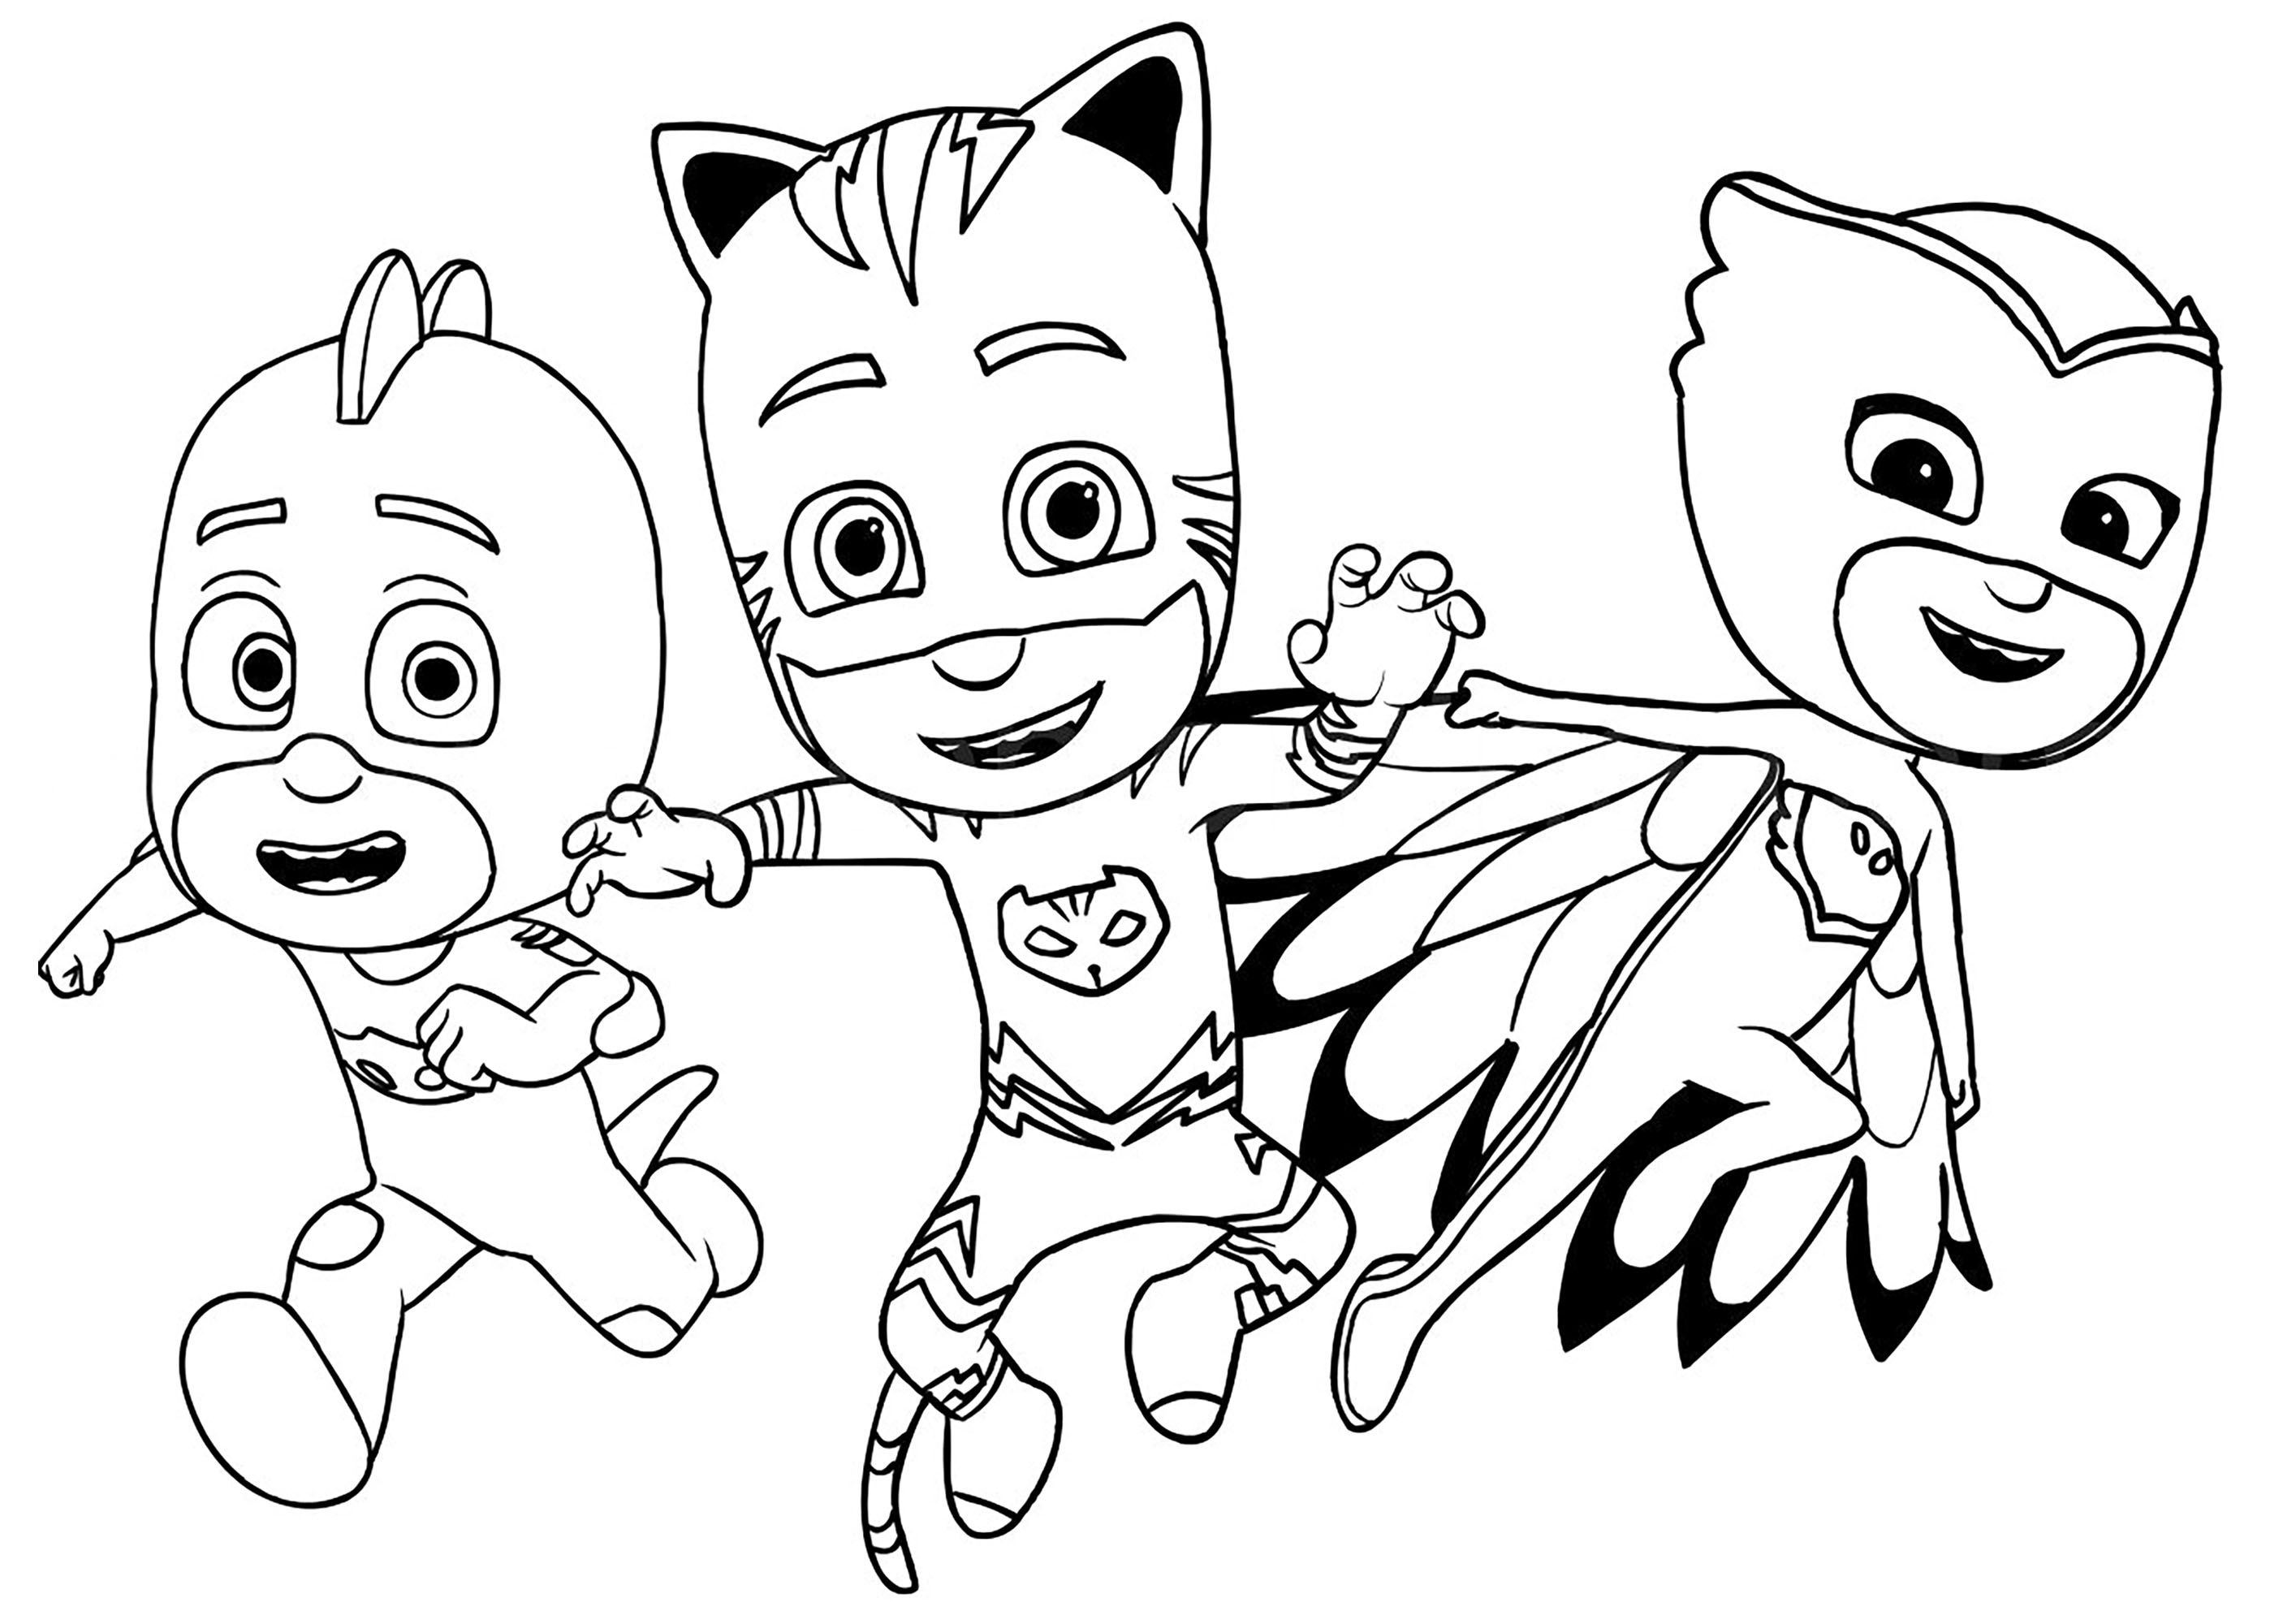 photograph relating to Pj Masks Printable Coloring Pages called Cost-free PJ Masks coloring website page in the direction of obtain, In opposition to the gallery